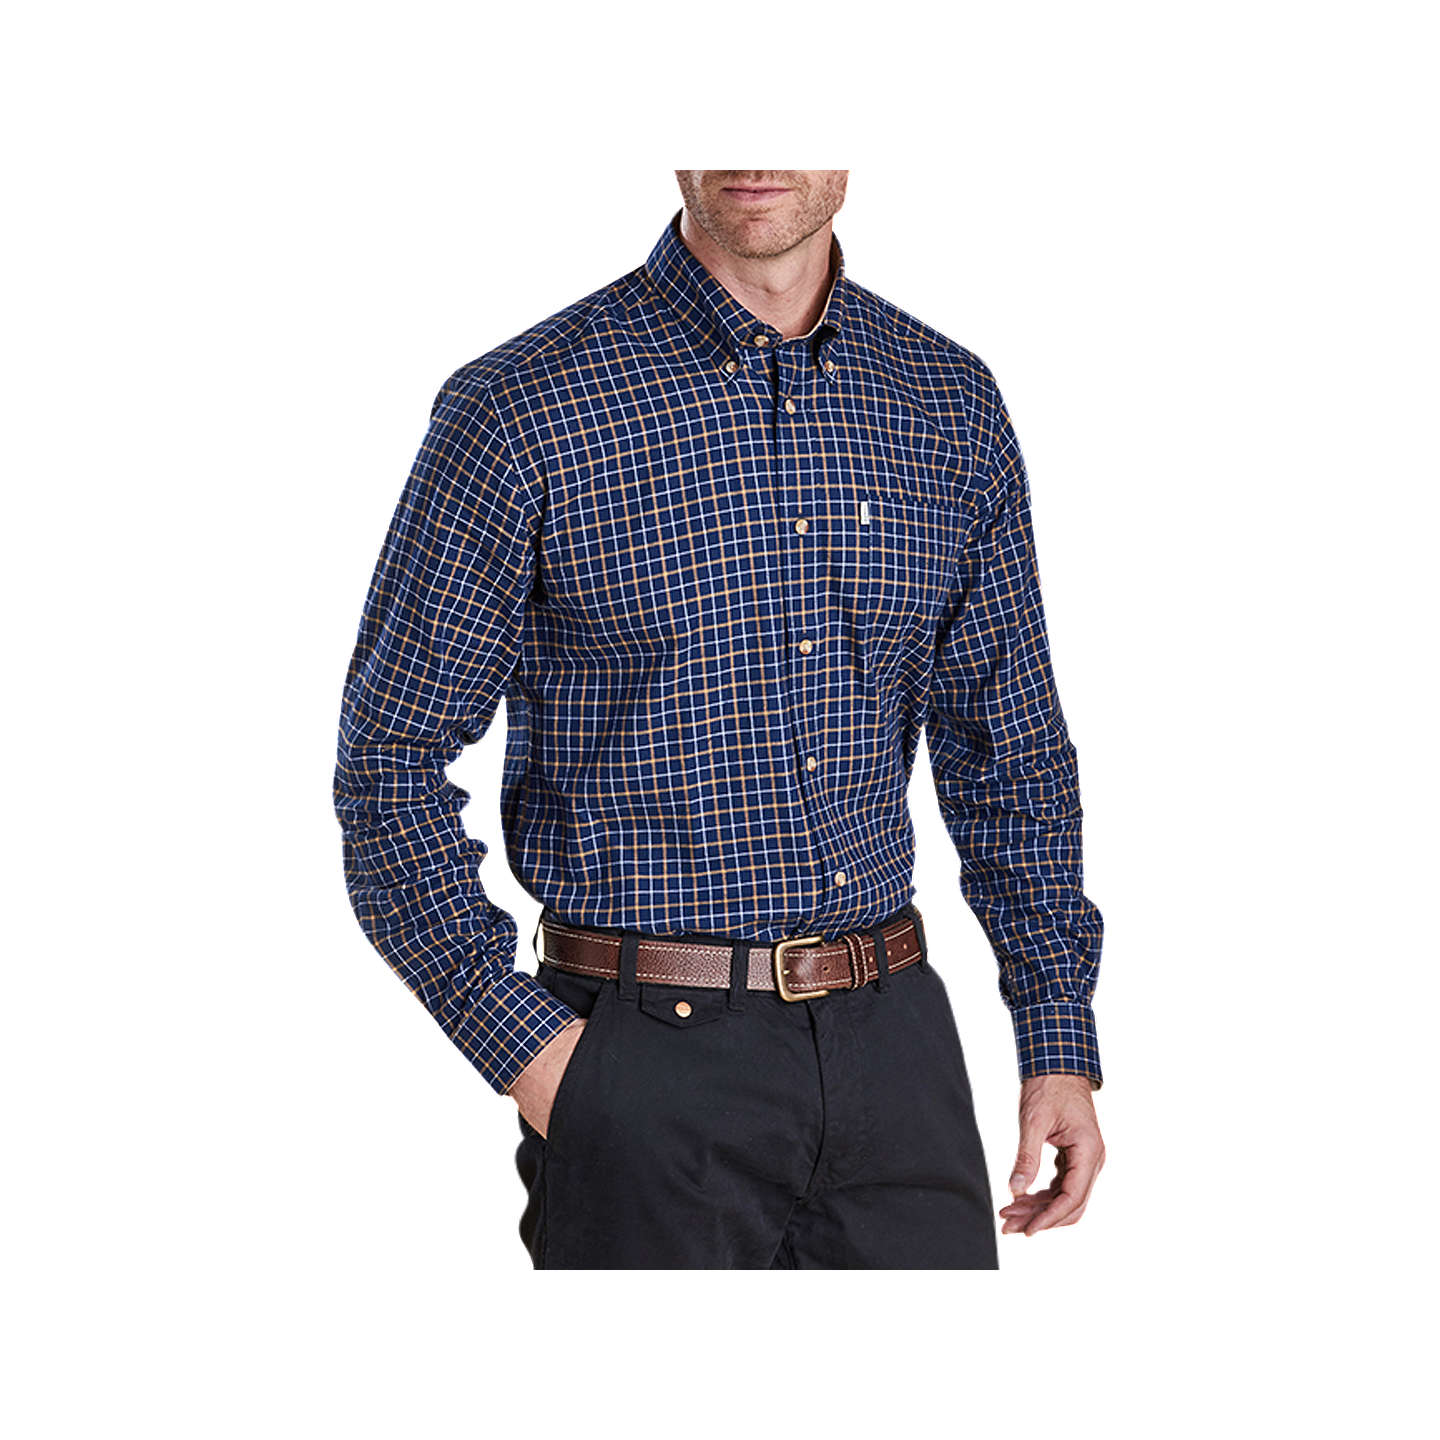 Barbour Bank Check Shirt, Navy by Barbour